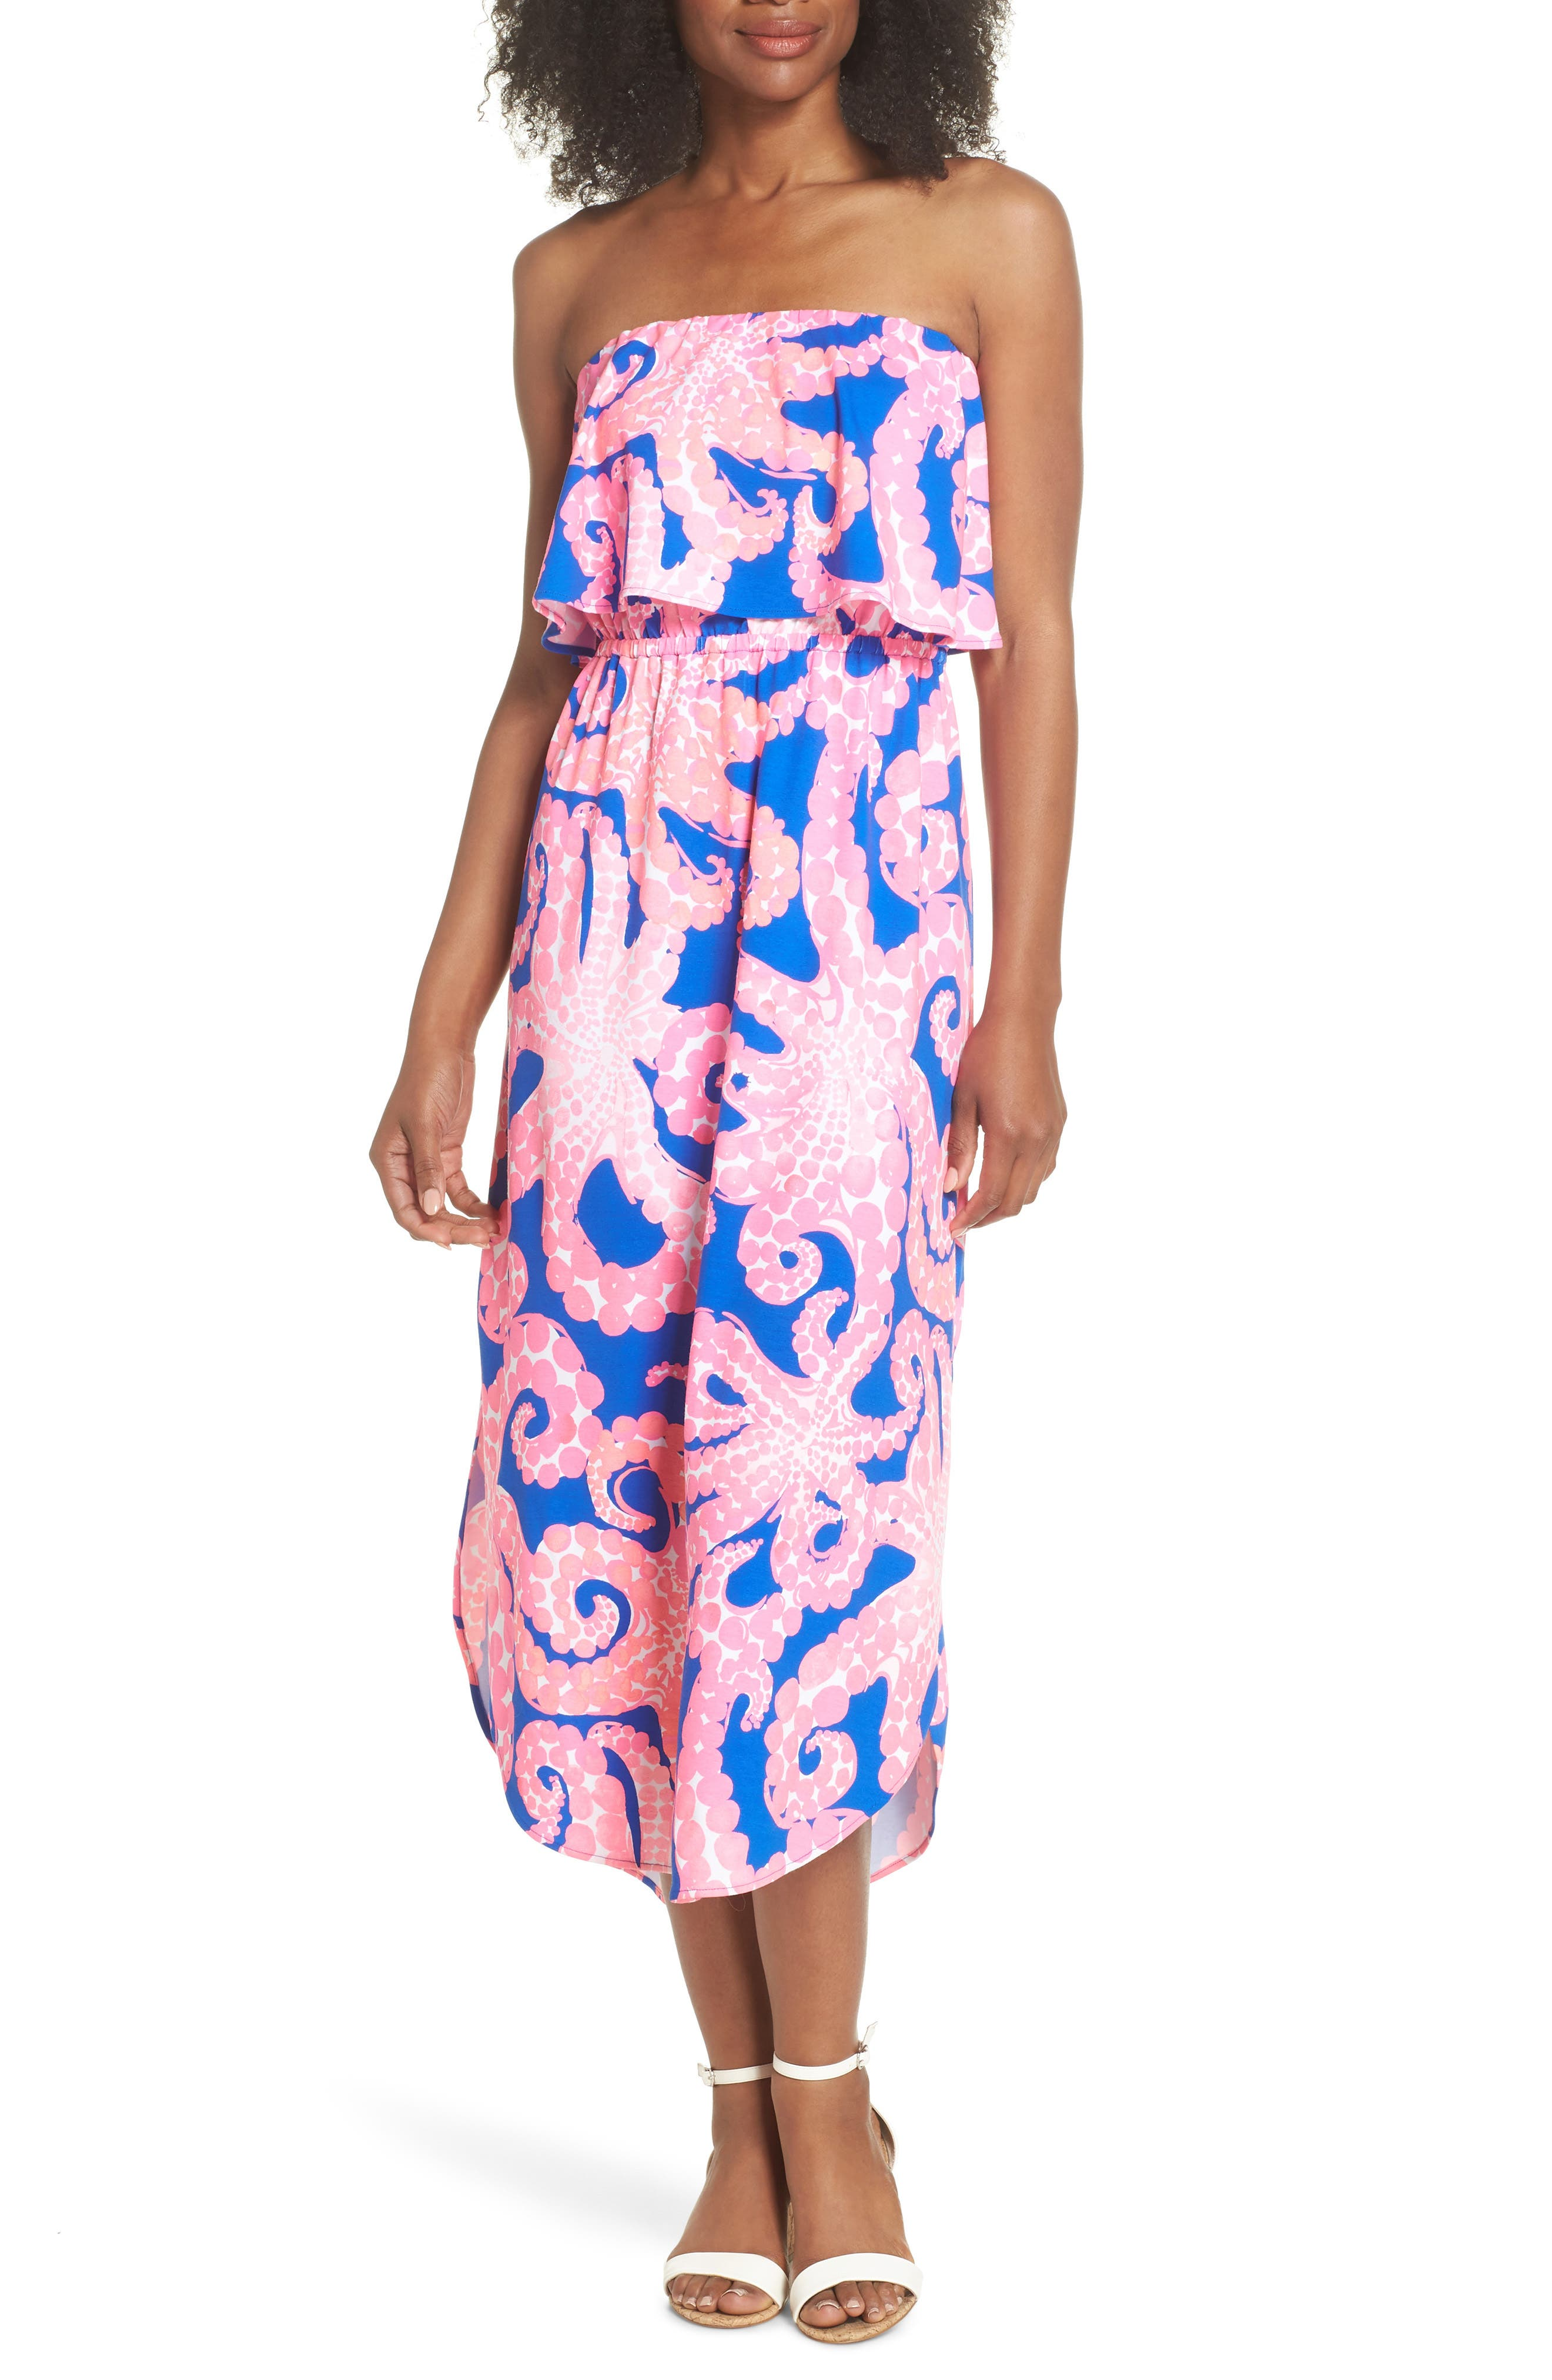 Meridian Strapless Midi Dress,                             Alternate thumbnail 5, color,                             IKAT BLUE MOCEAN